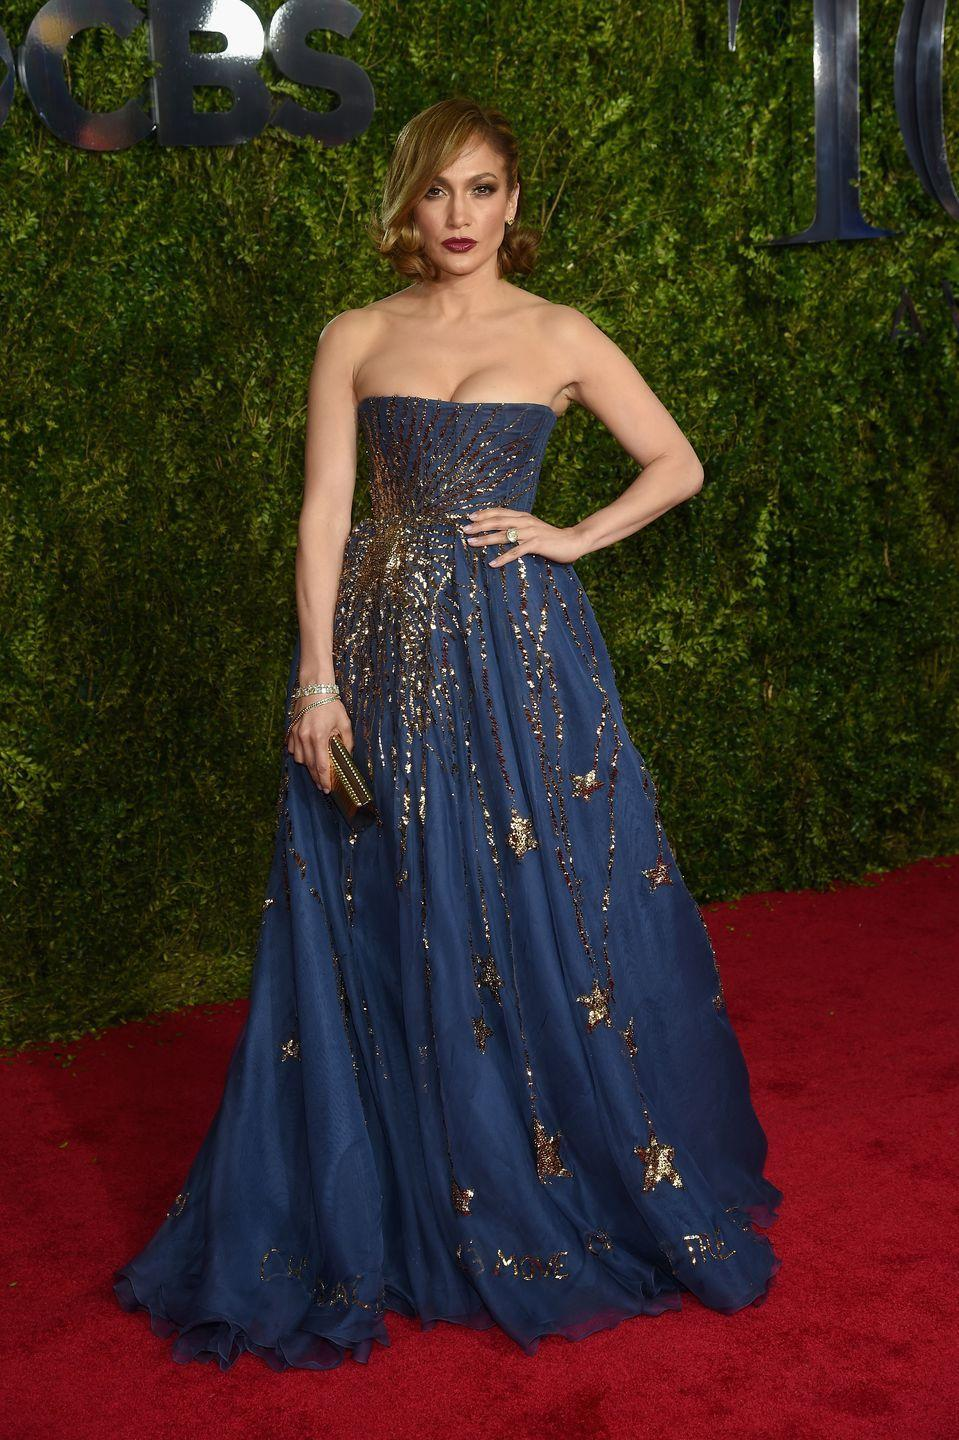 <p><strong>When: </strong>June 2015</p><p><strong>Where:</strong> The Tony Awards</p><p><strong>Wearing: </strong>Zuhair Murad</p>